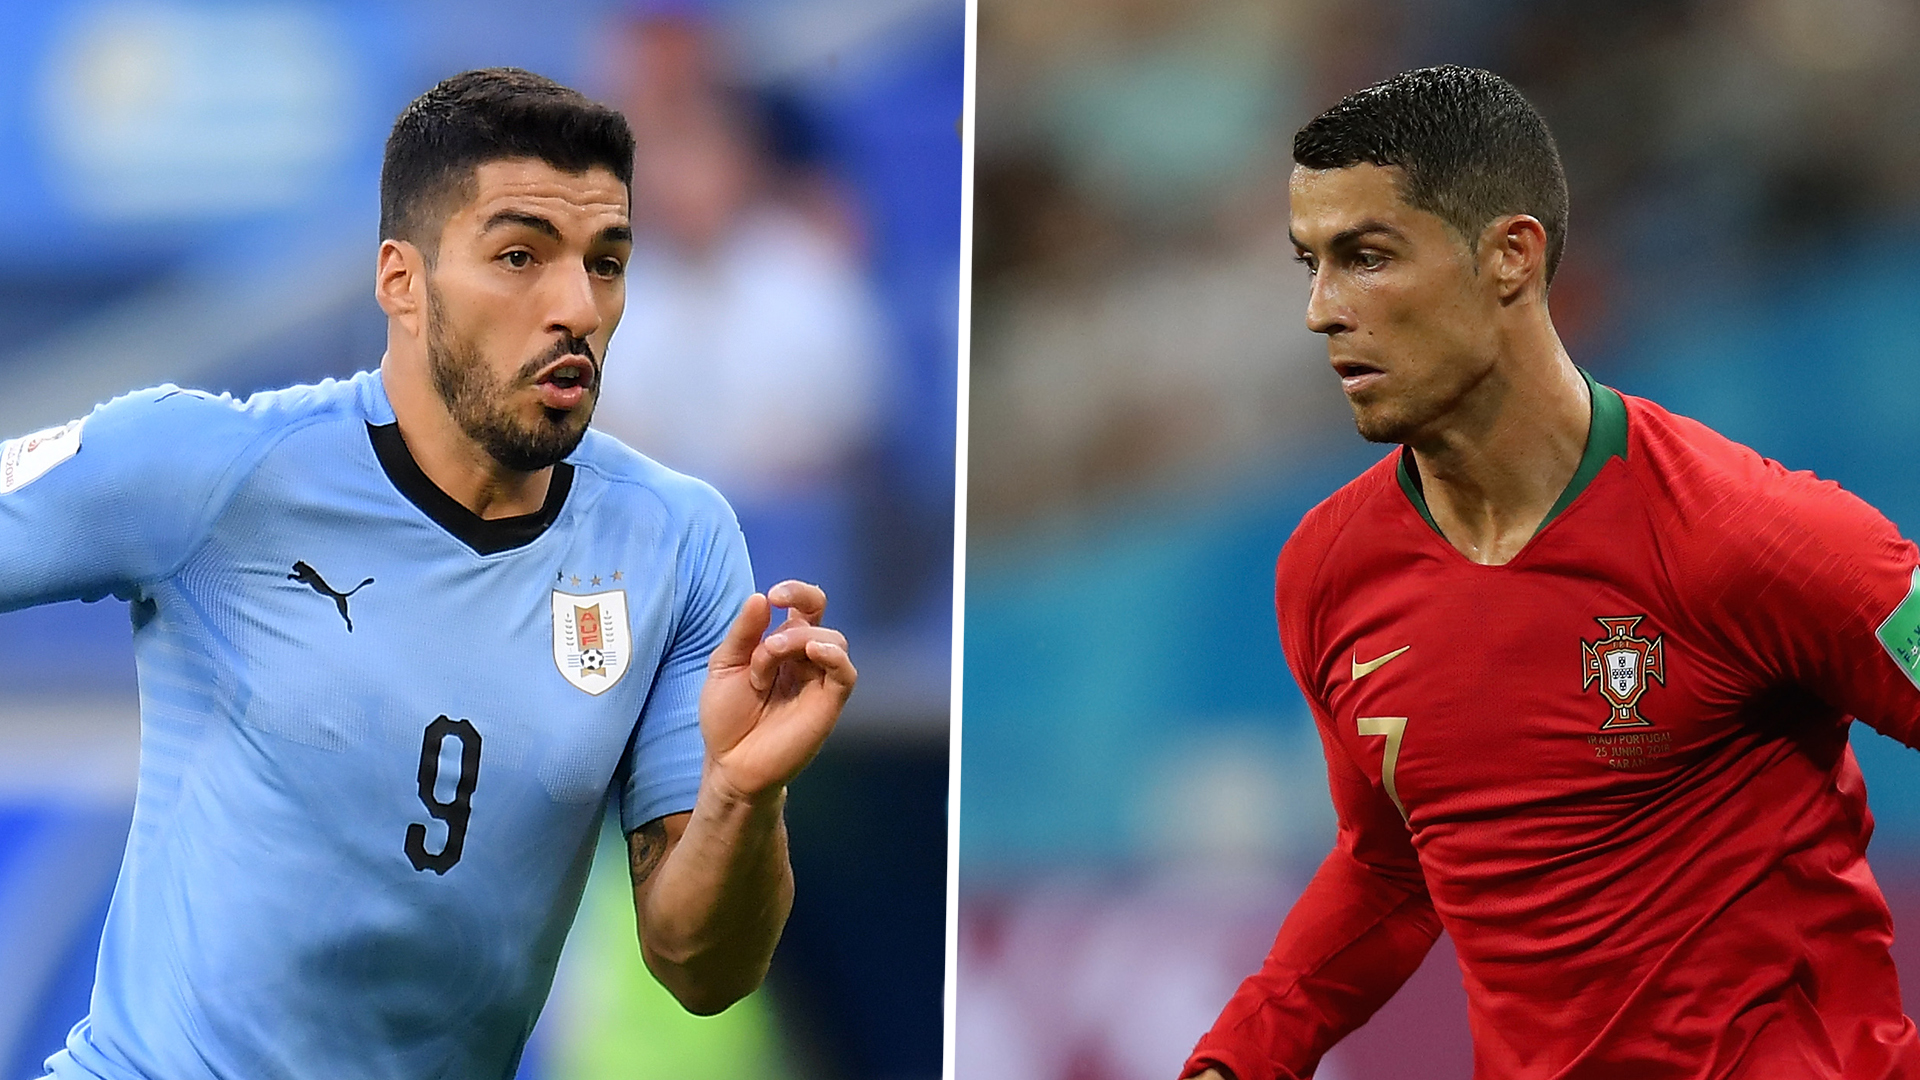 Cristiano Ronaldo struggles in the face of Uruguay's Madrid centric defence